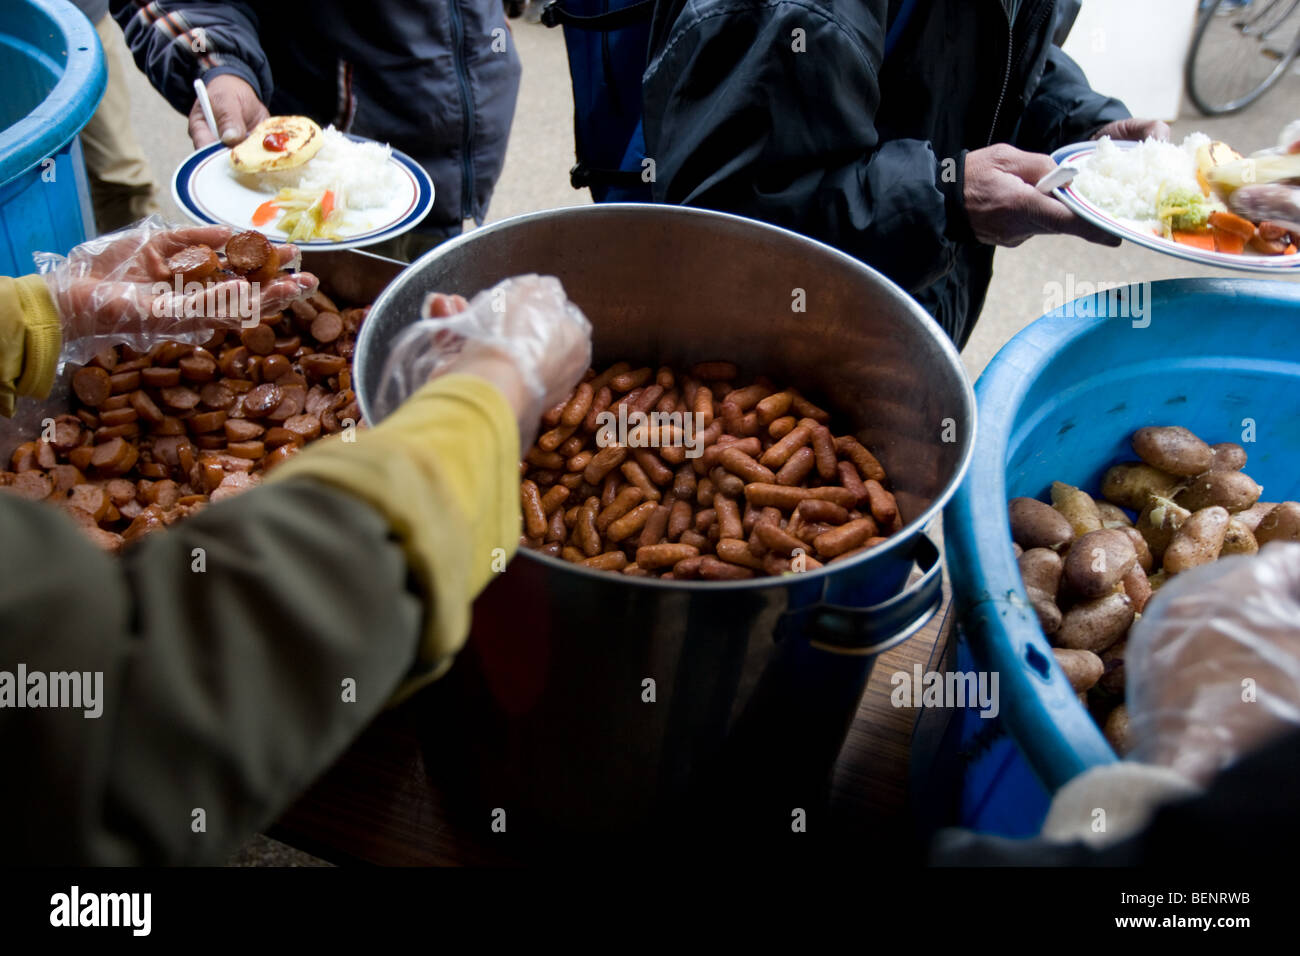 Approximately 700 homeless men attend a soup kitchen run by a Korean Christian church, in Ueno Park, Tokyo, Japan - Stock Image